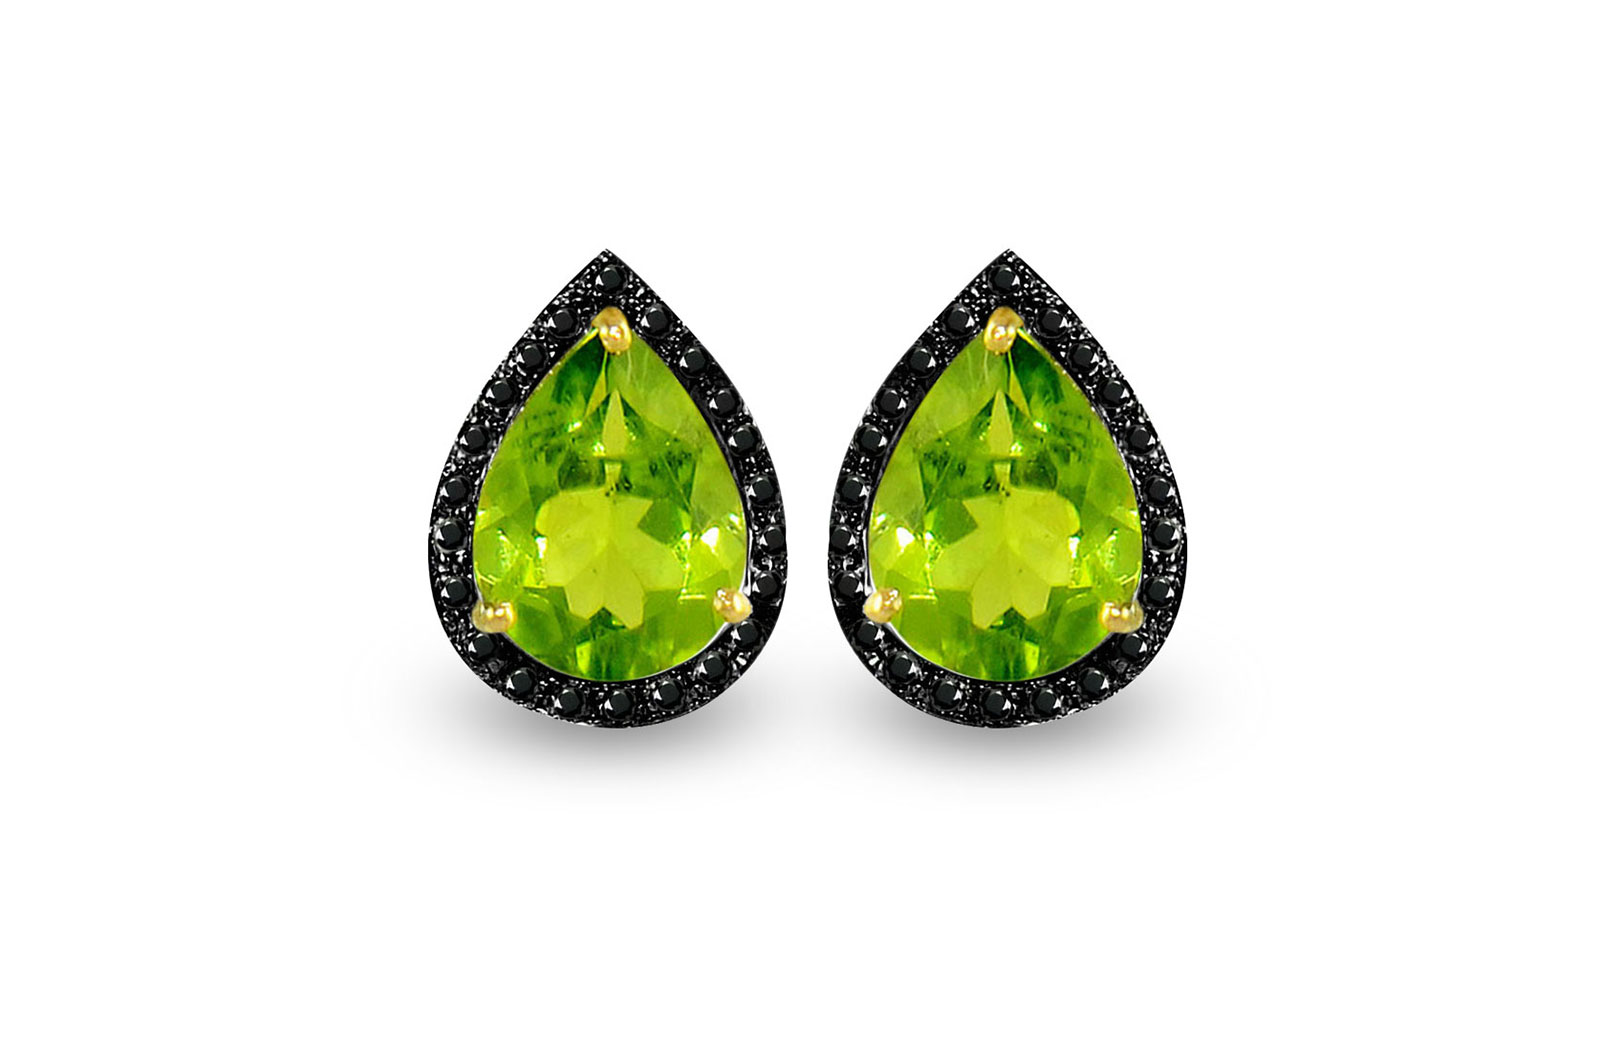 Vera Perla 18K Gold 0.24ct Black Diamonds, Peridot Earrings